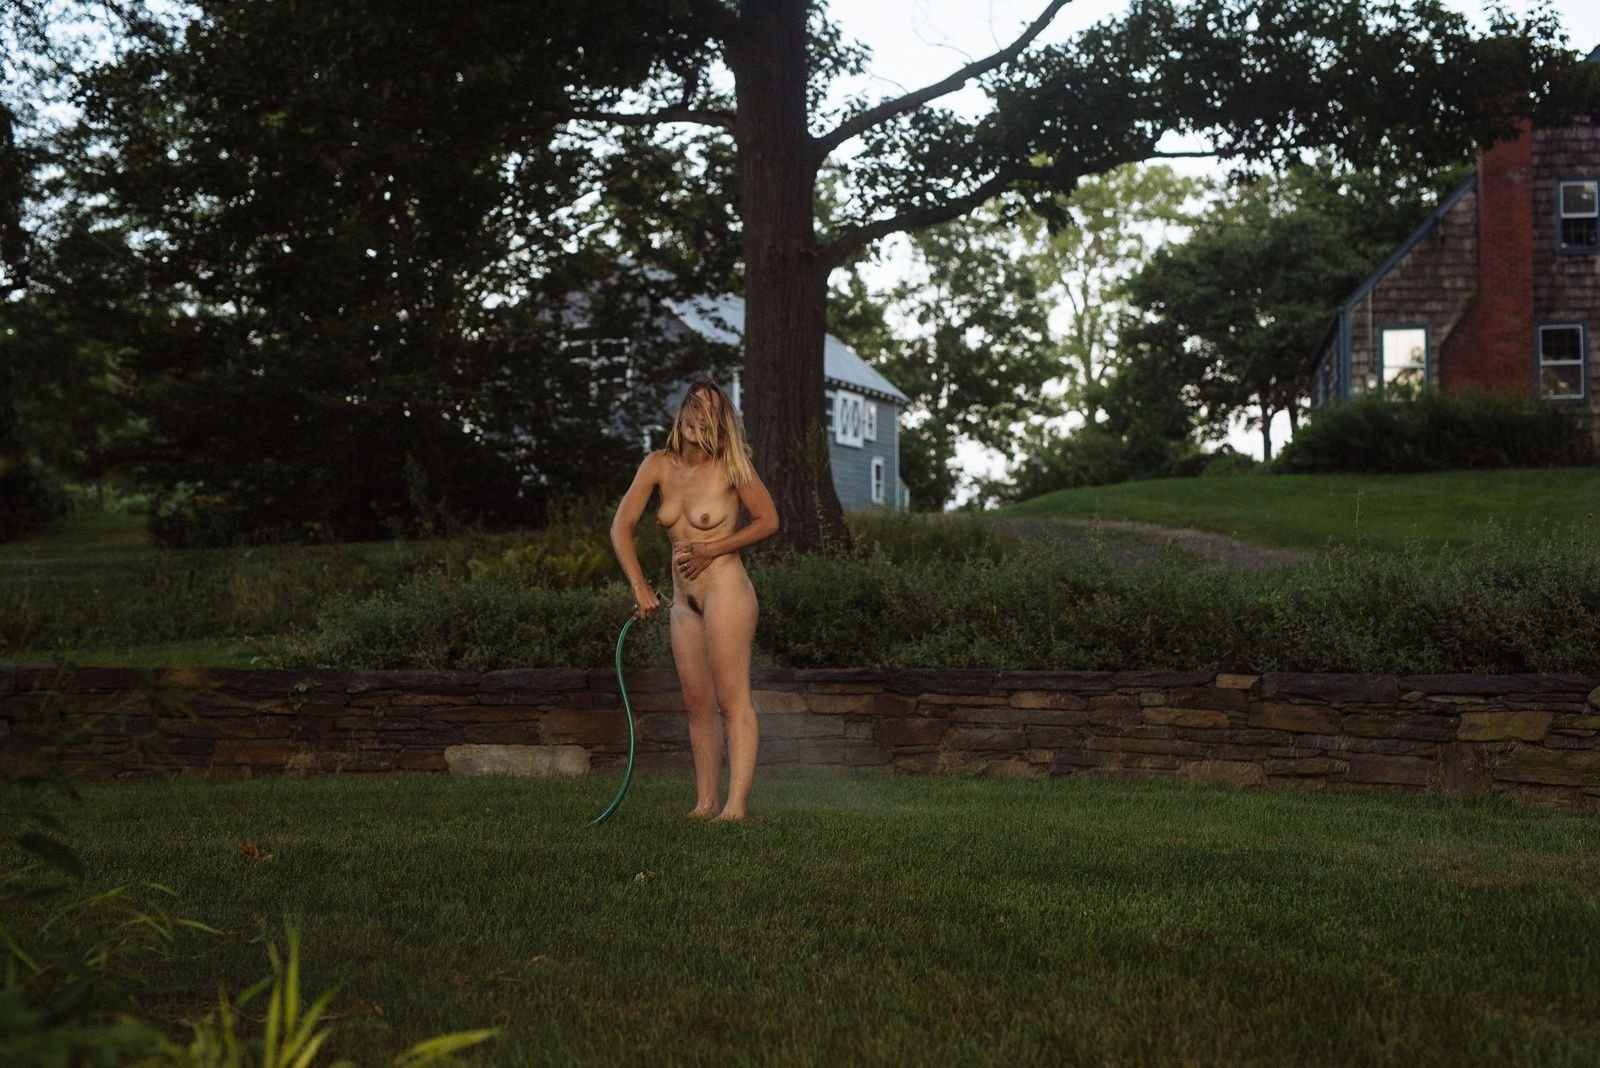 At This Michigan Campground, Nudity Is Just A Way Of Life